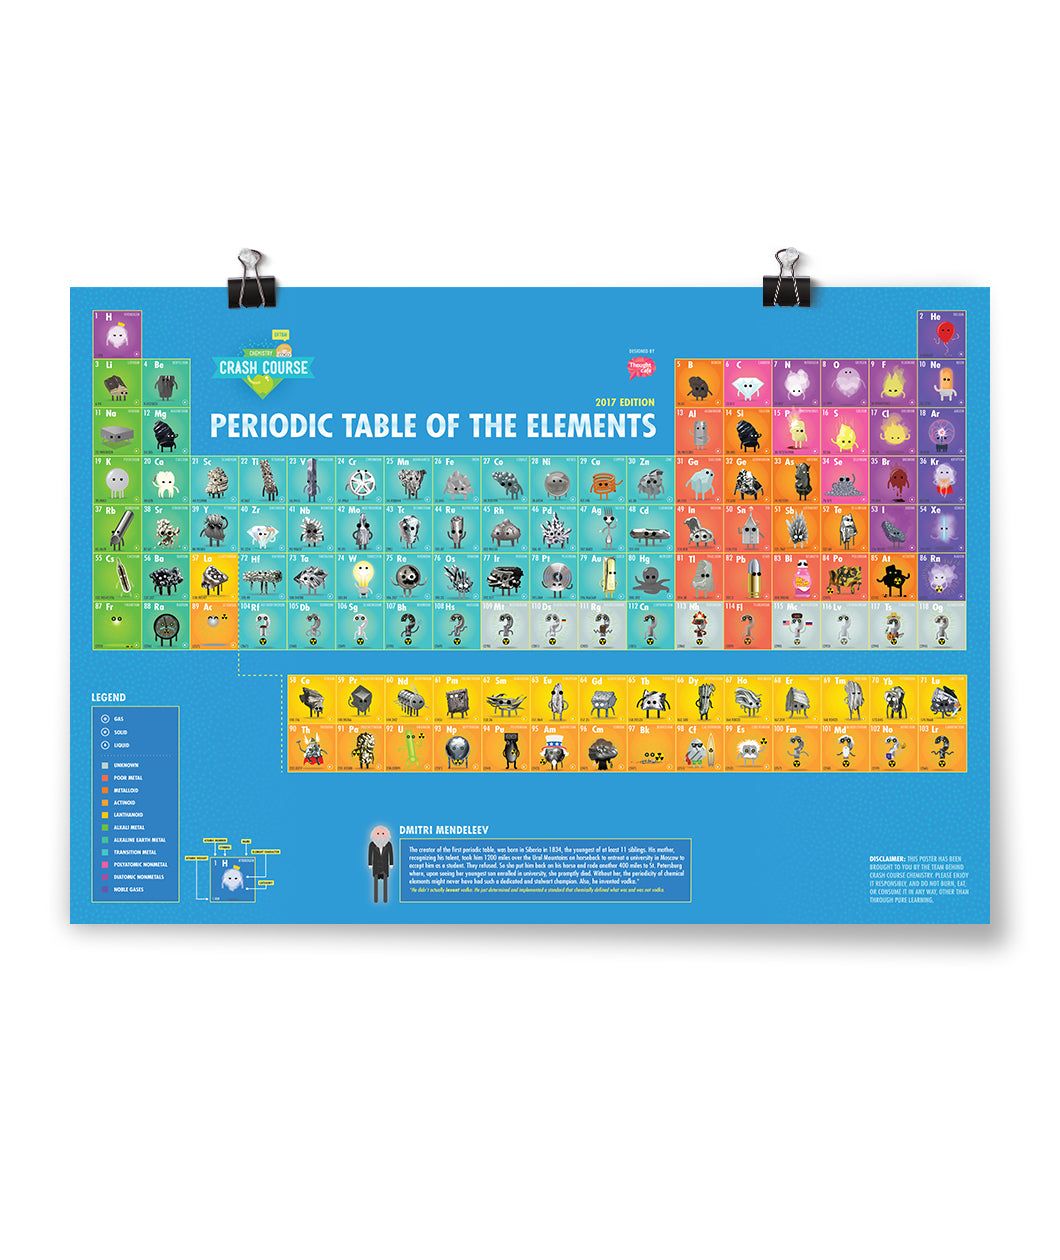 Crashcourse chemistry periodic table of the elements dftba crashcourse chemistry periodic table of the elements urtaz Gallery